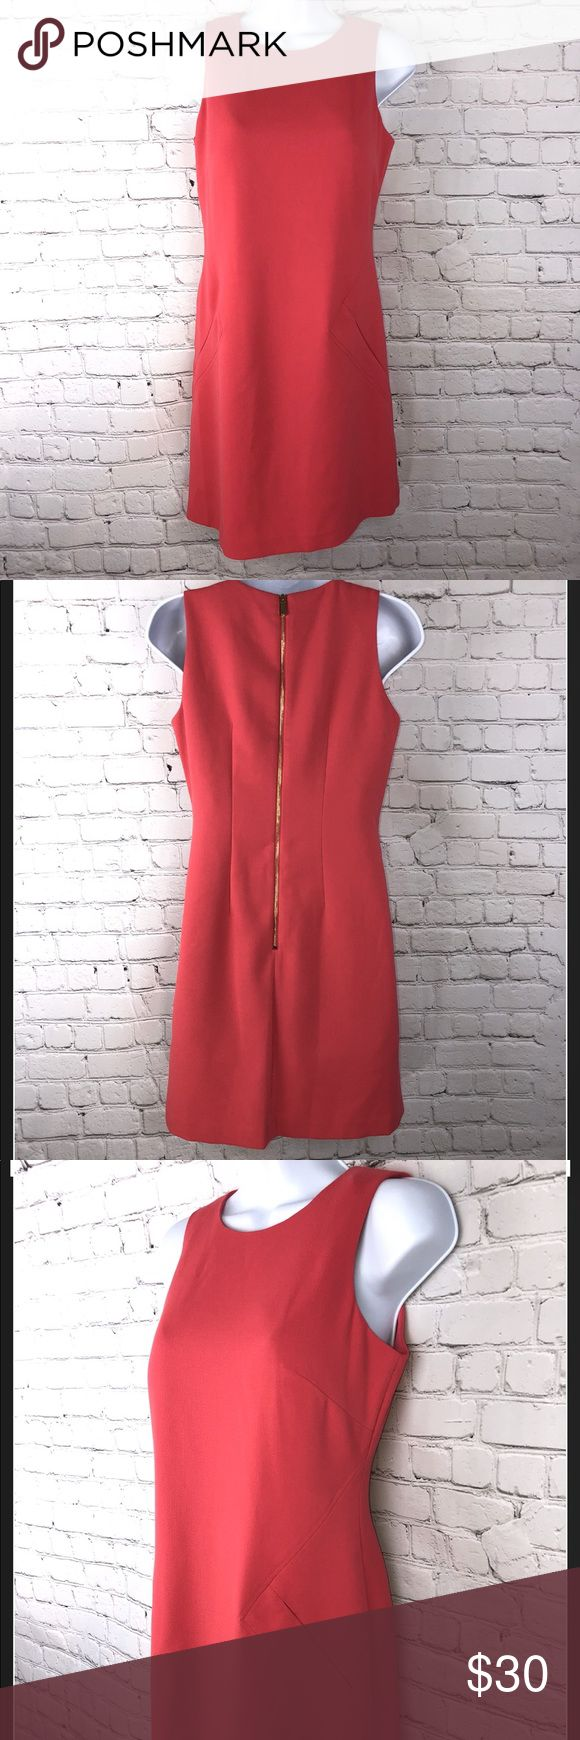 Vince Camuto shift dress Beautiful classic shift dress. Perfect for Spring! Coral colored, polyester blend with a zip up in the back and underneath lining. Like new! Women's petite 2 , refer to photos for measurements.  Excellent pre owned condition! Vince Camuto Dresses Strapless